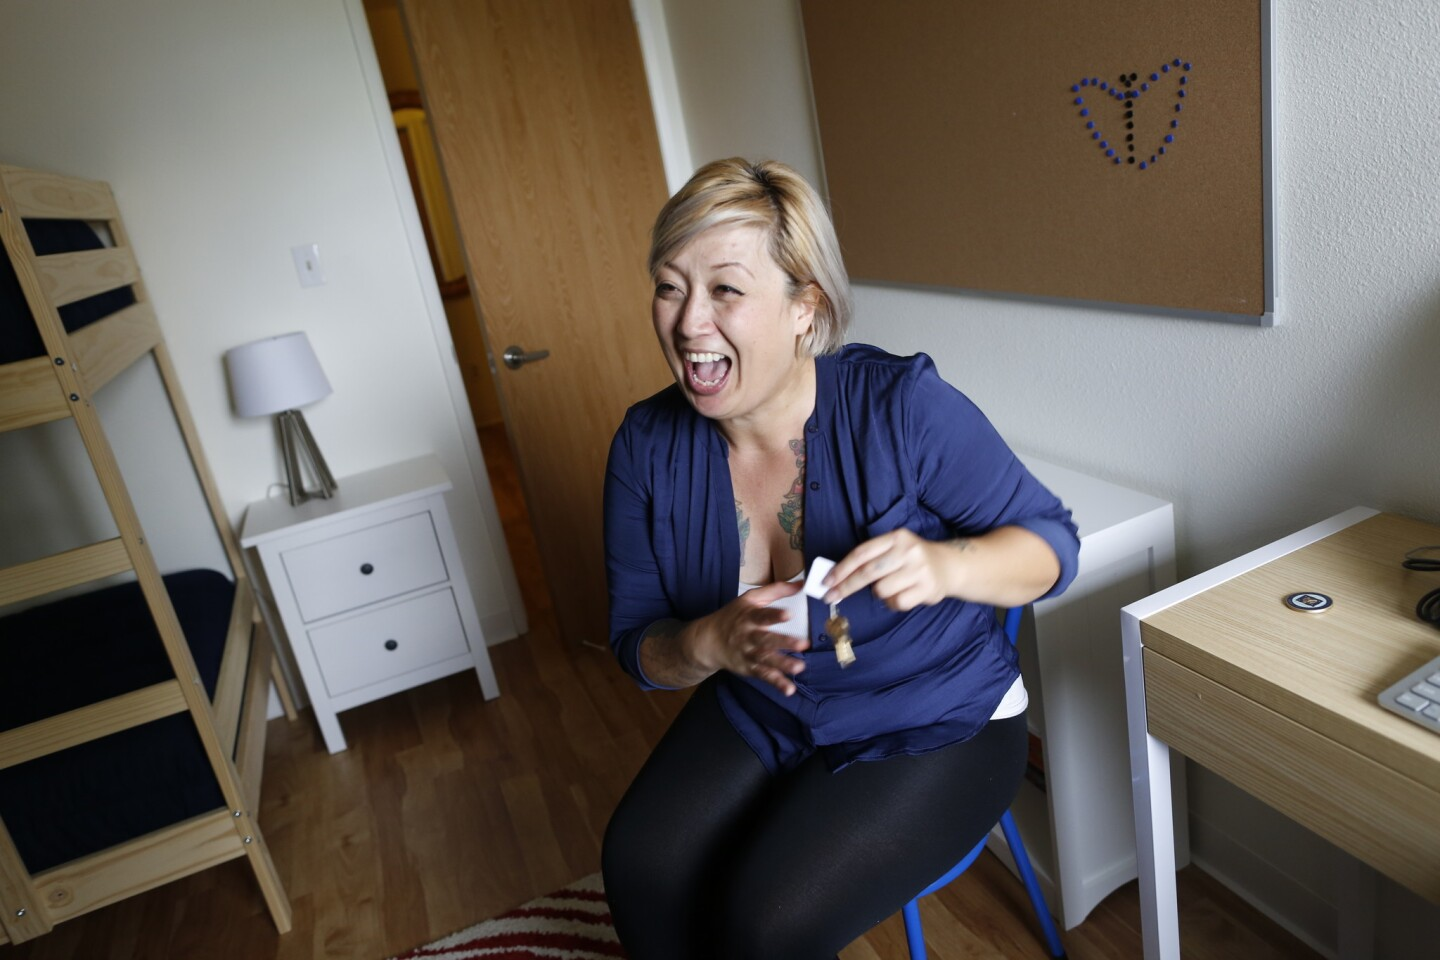 With a beaming smile on her face, Navy Veteran Maria Teresa Alcazar, shakes the keys to her new home as she sits in her son's bedroom, the day she officially received the keys.